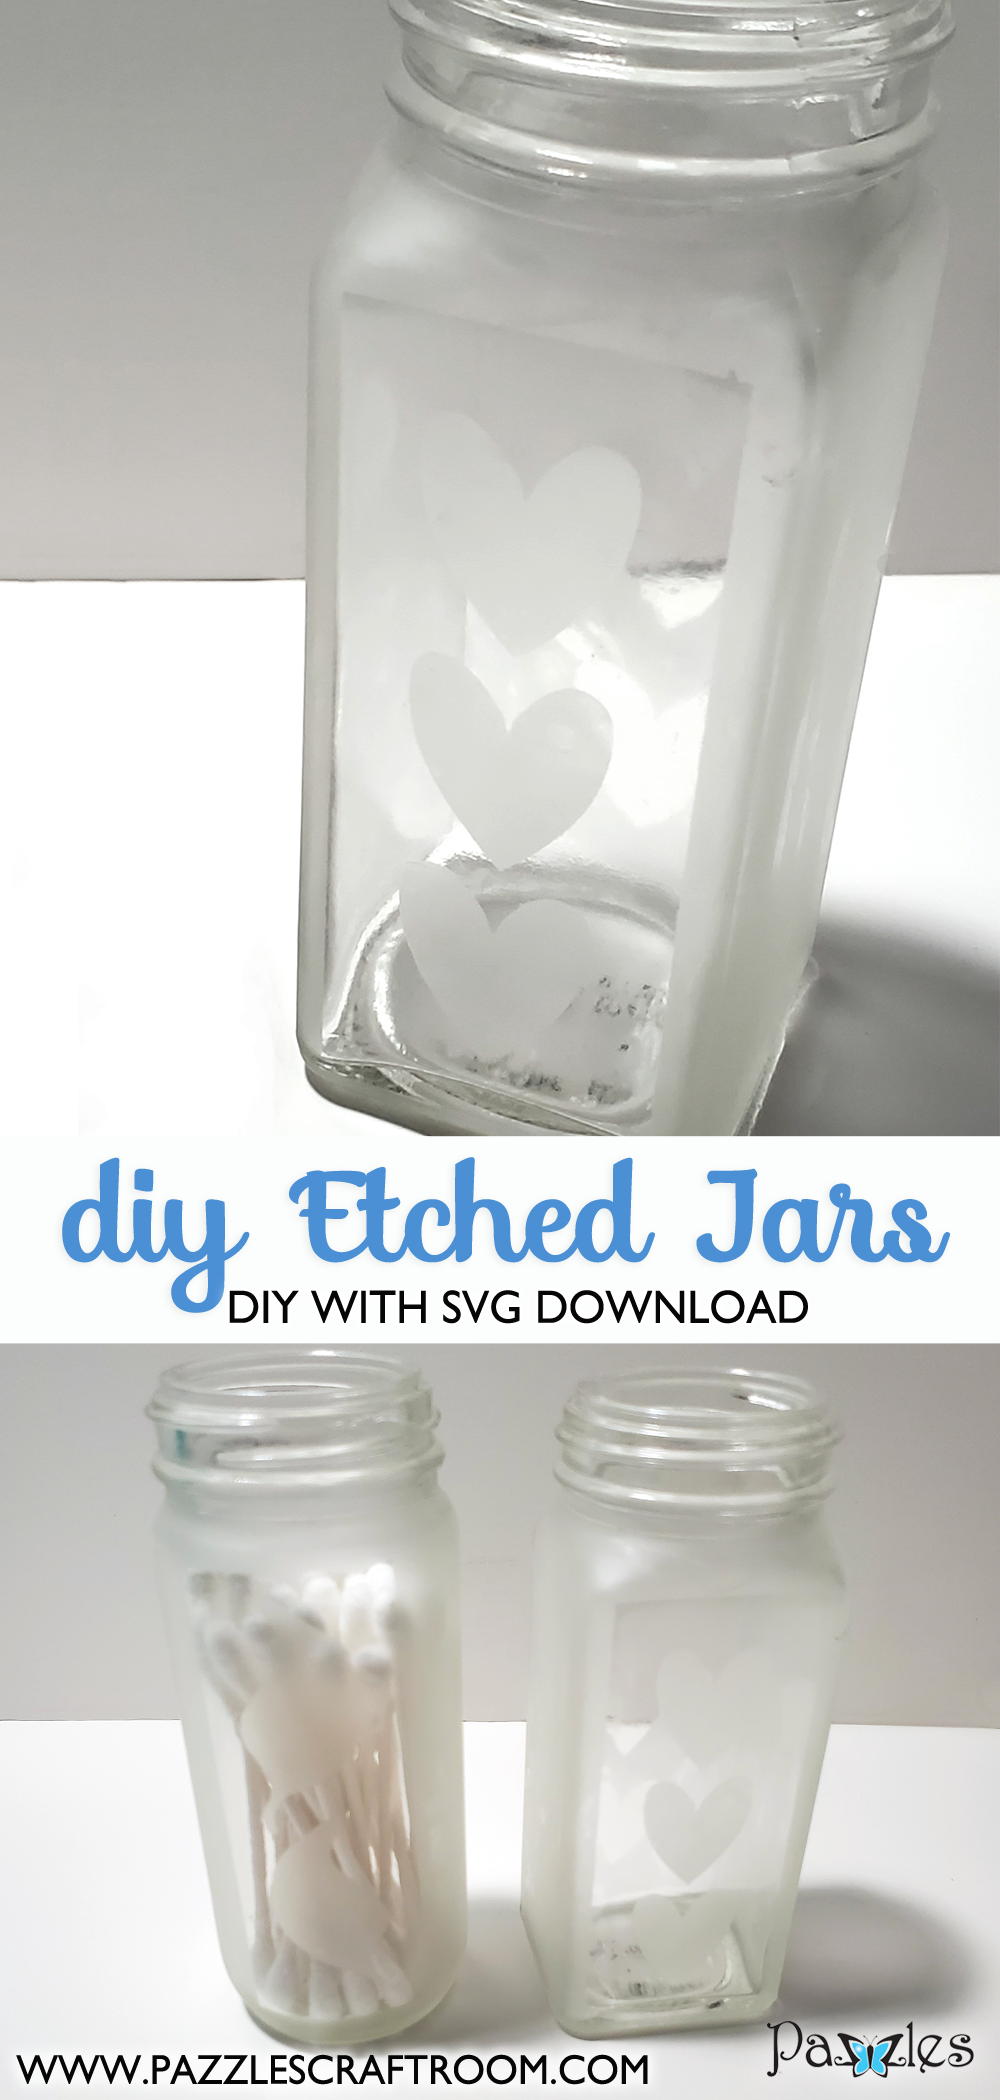 Pazzles DIY Etched Jars Upcycle with instant SVG download.  Instant SVG download compatible with all major electronic cutters including Pazzles Inspiration, Cricut, and Silhouette Cameo. Design by Renee Smart.